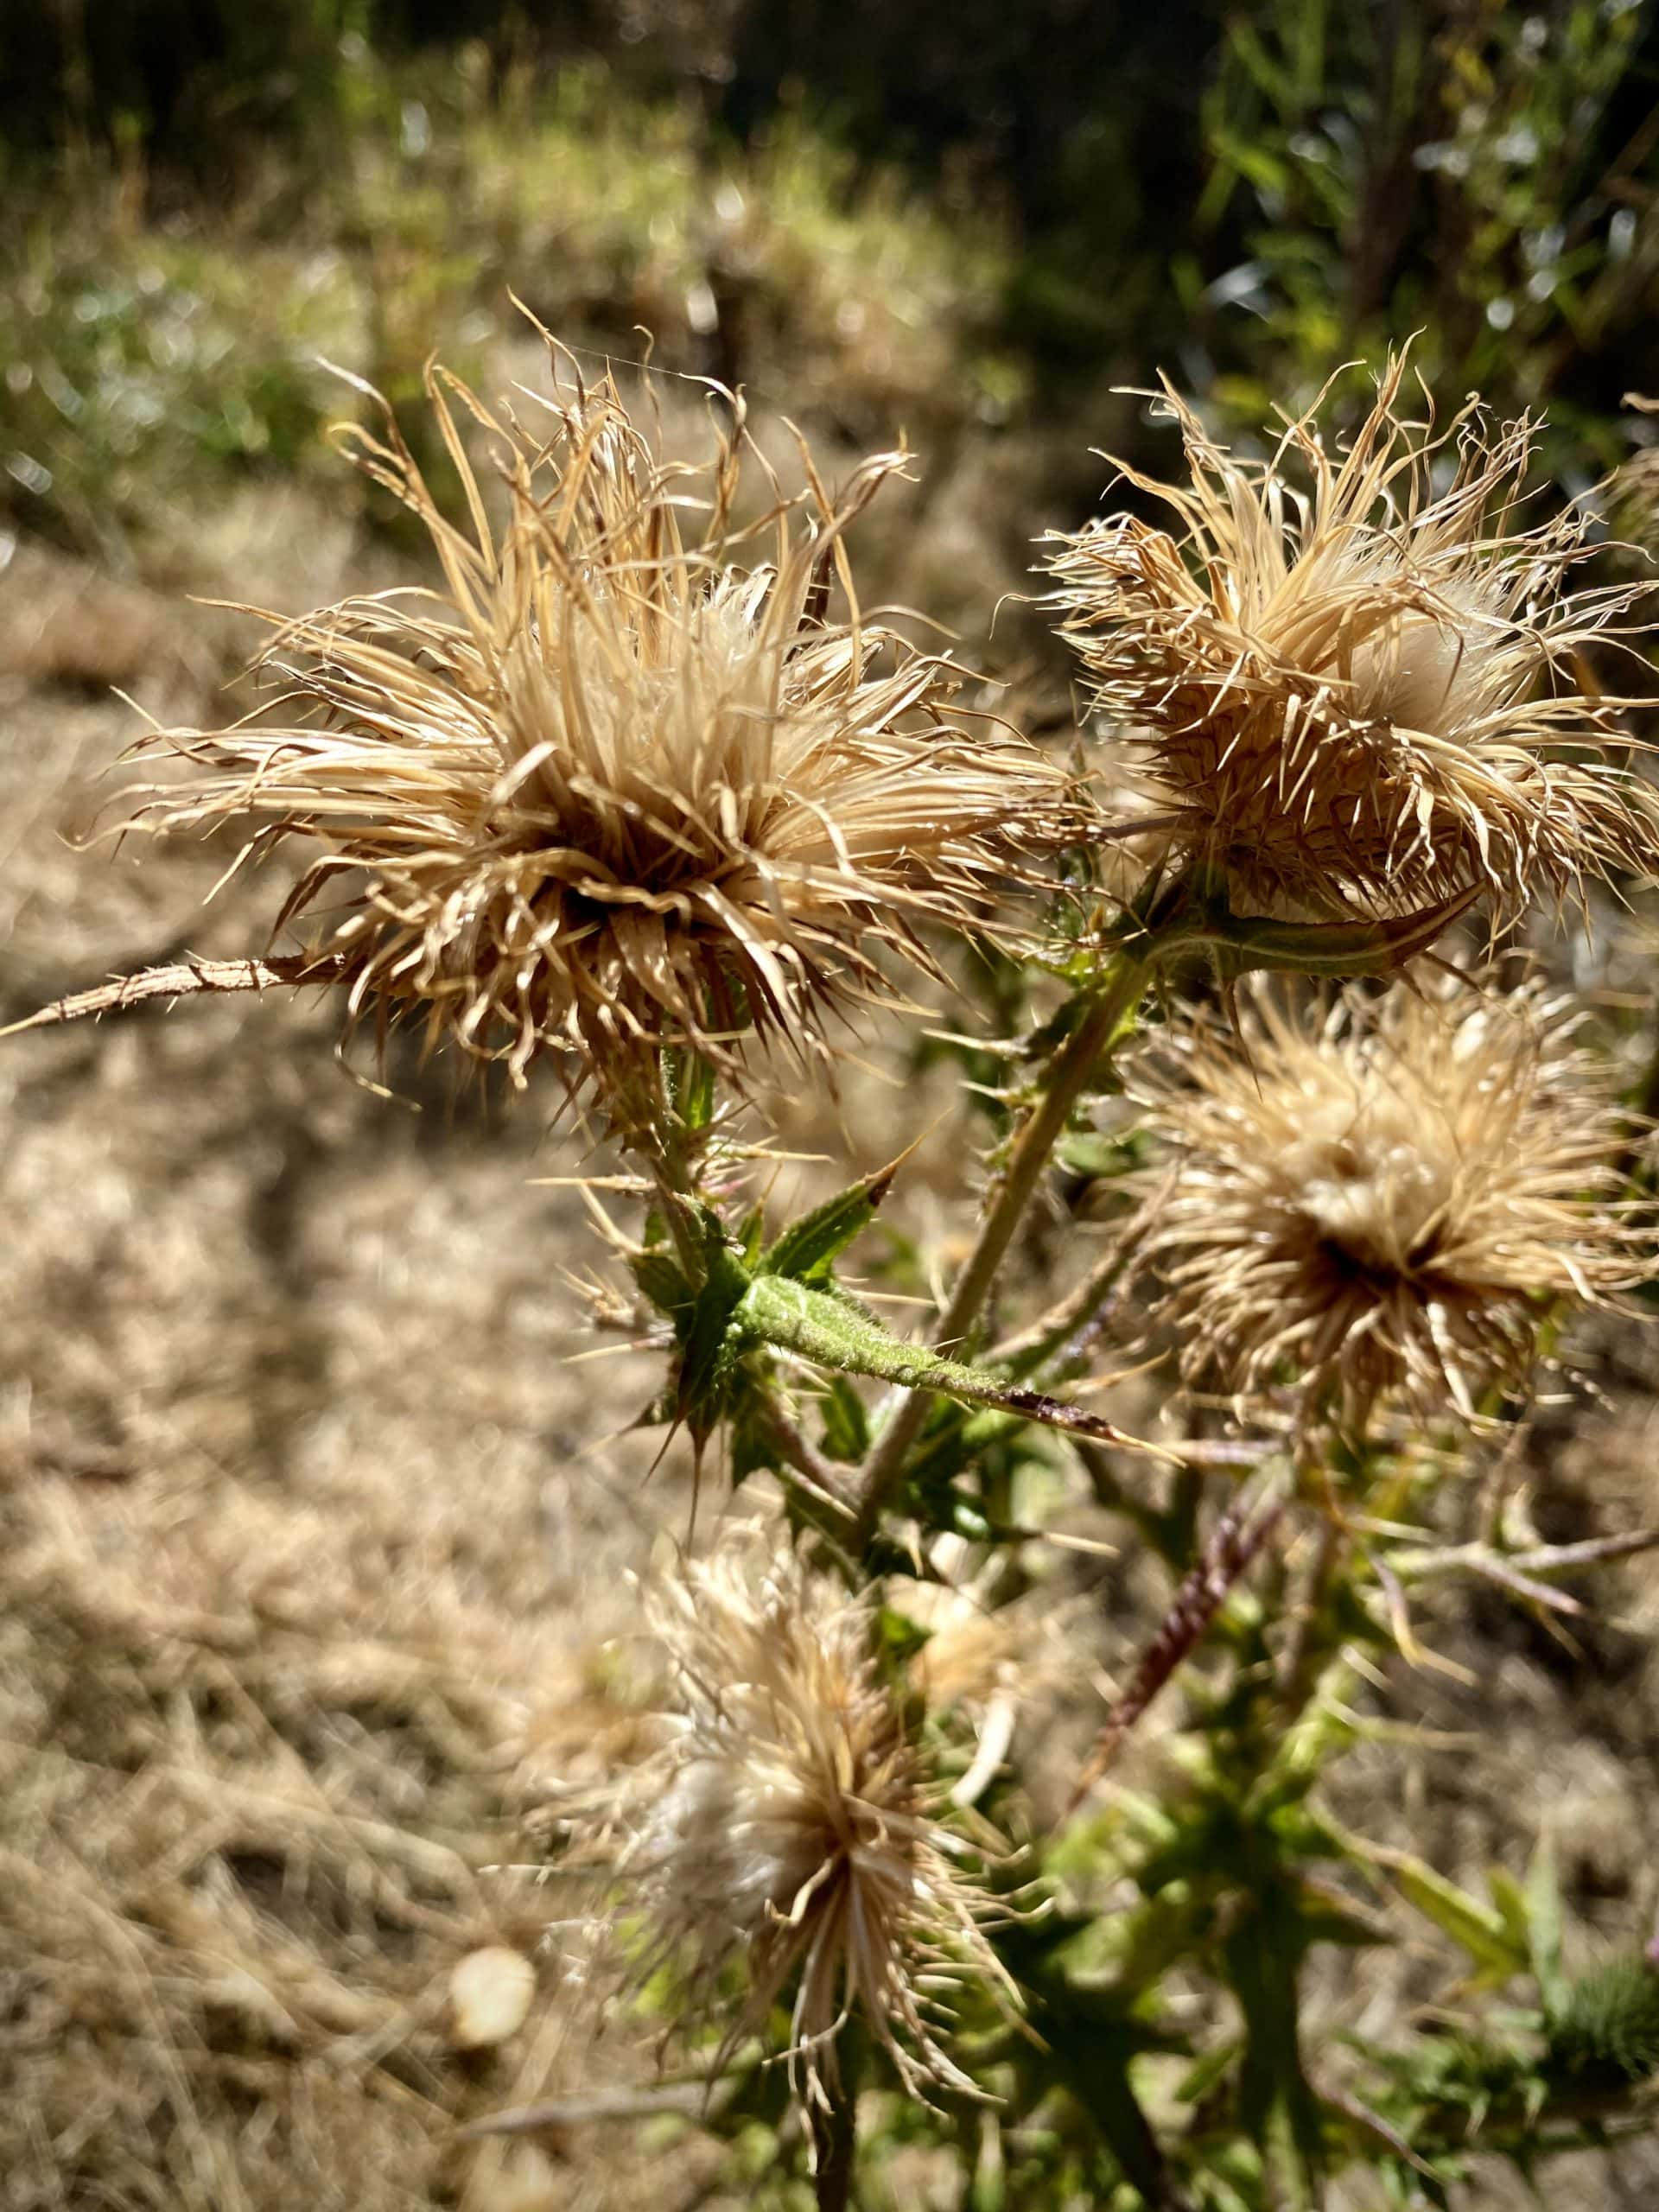 Thorny looking bush in the high desert of eastern Oregon.